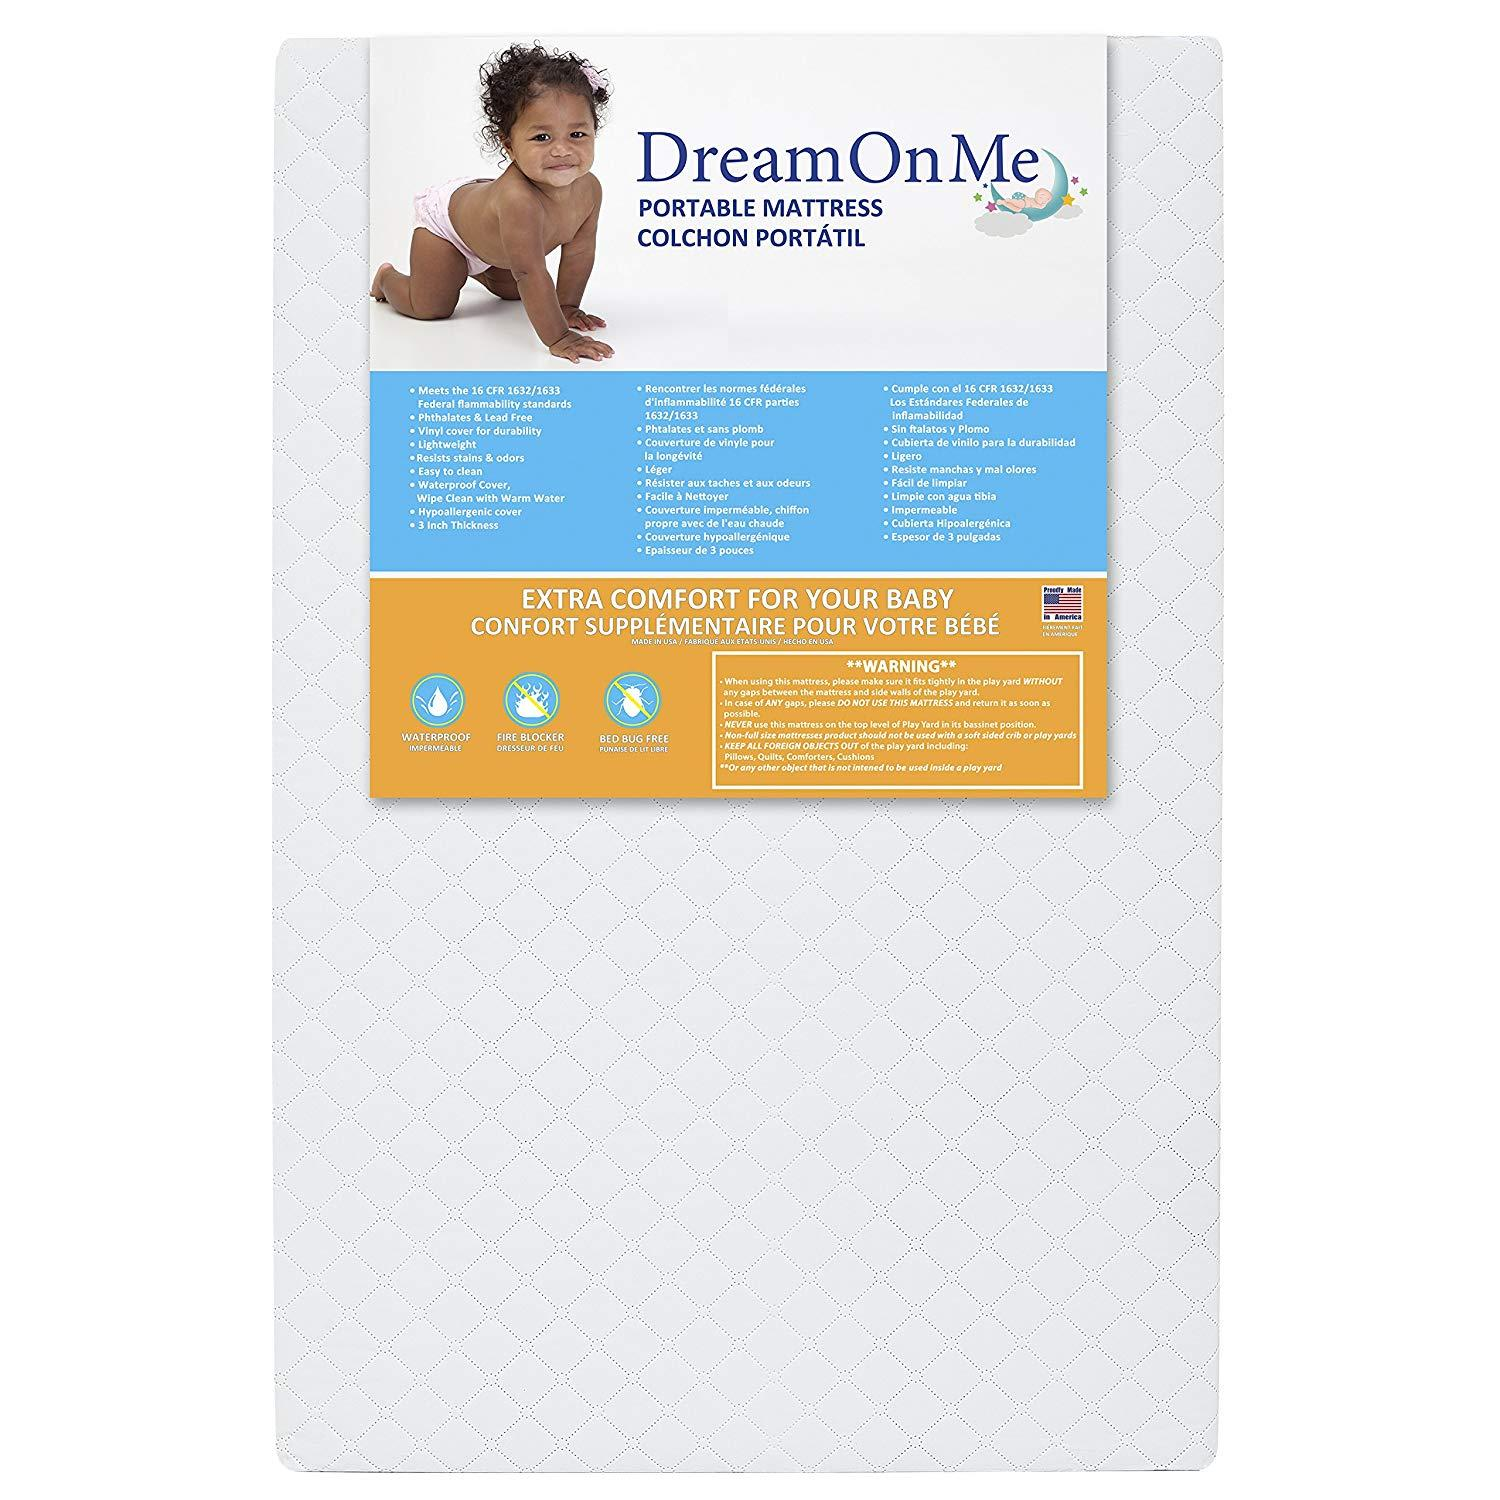 Dream On Me 3in Extra Firm Portable Crib Mattress for $7.22